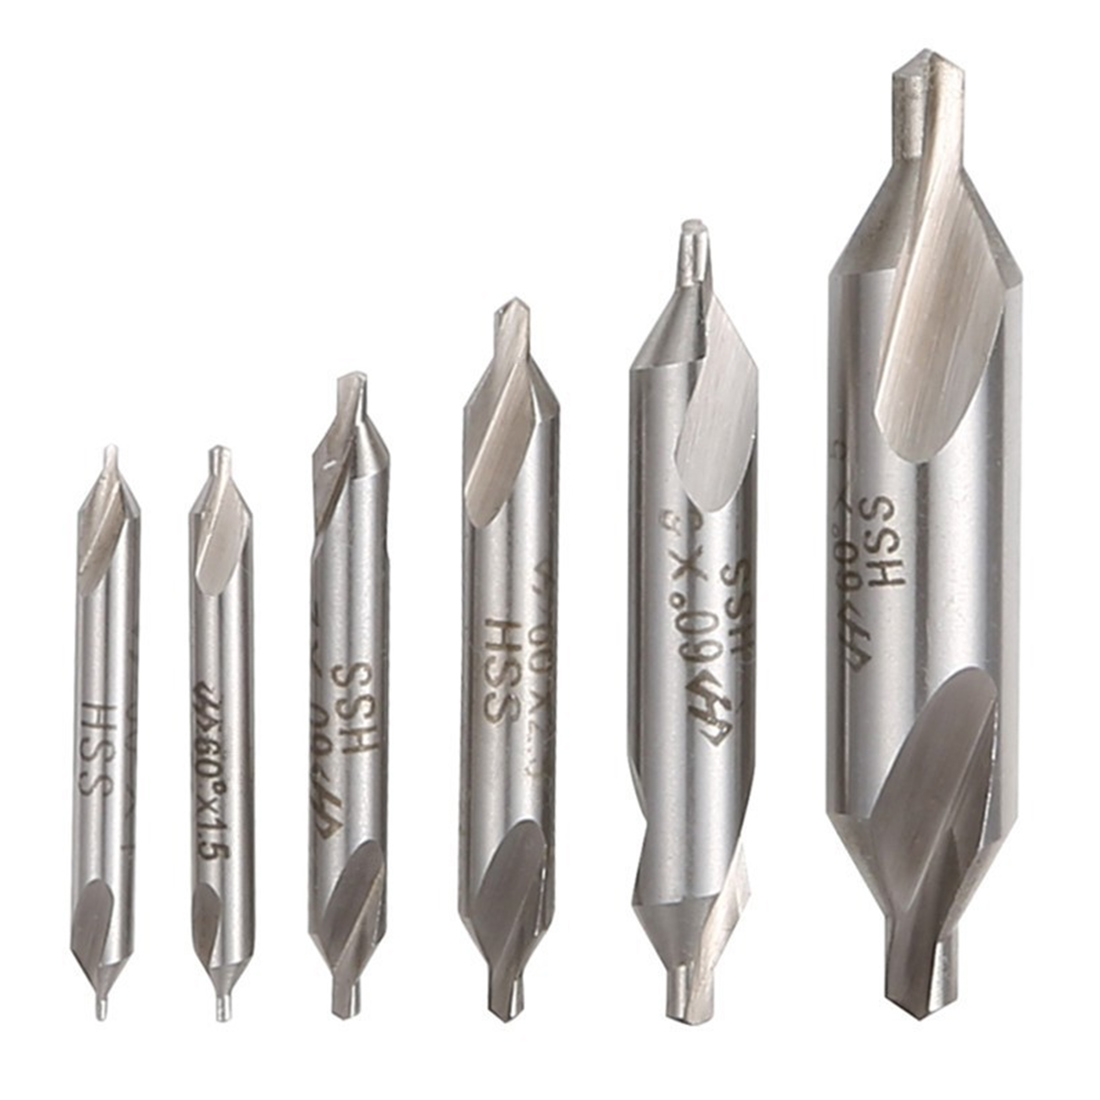 1pc 1mm /2mm /3mm /5mm HSS Combined Center Drills Bits 60 Degree Countersink Drill Set For Power Tools